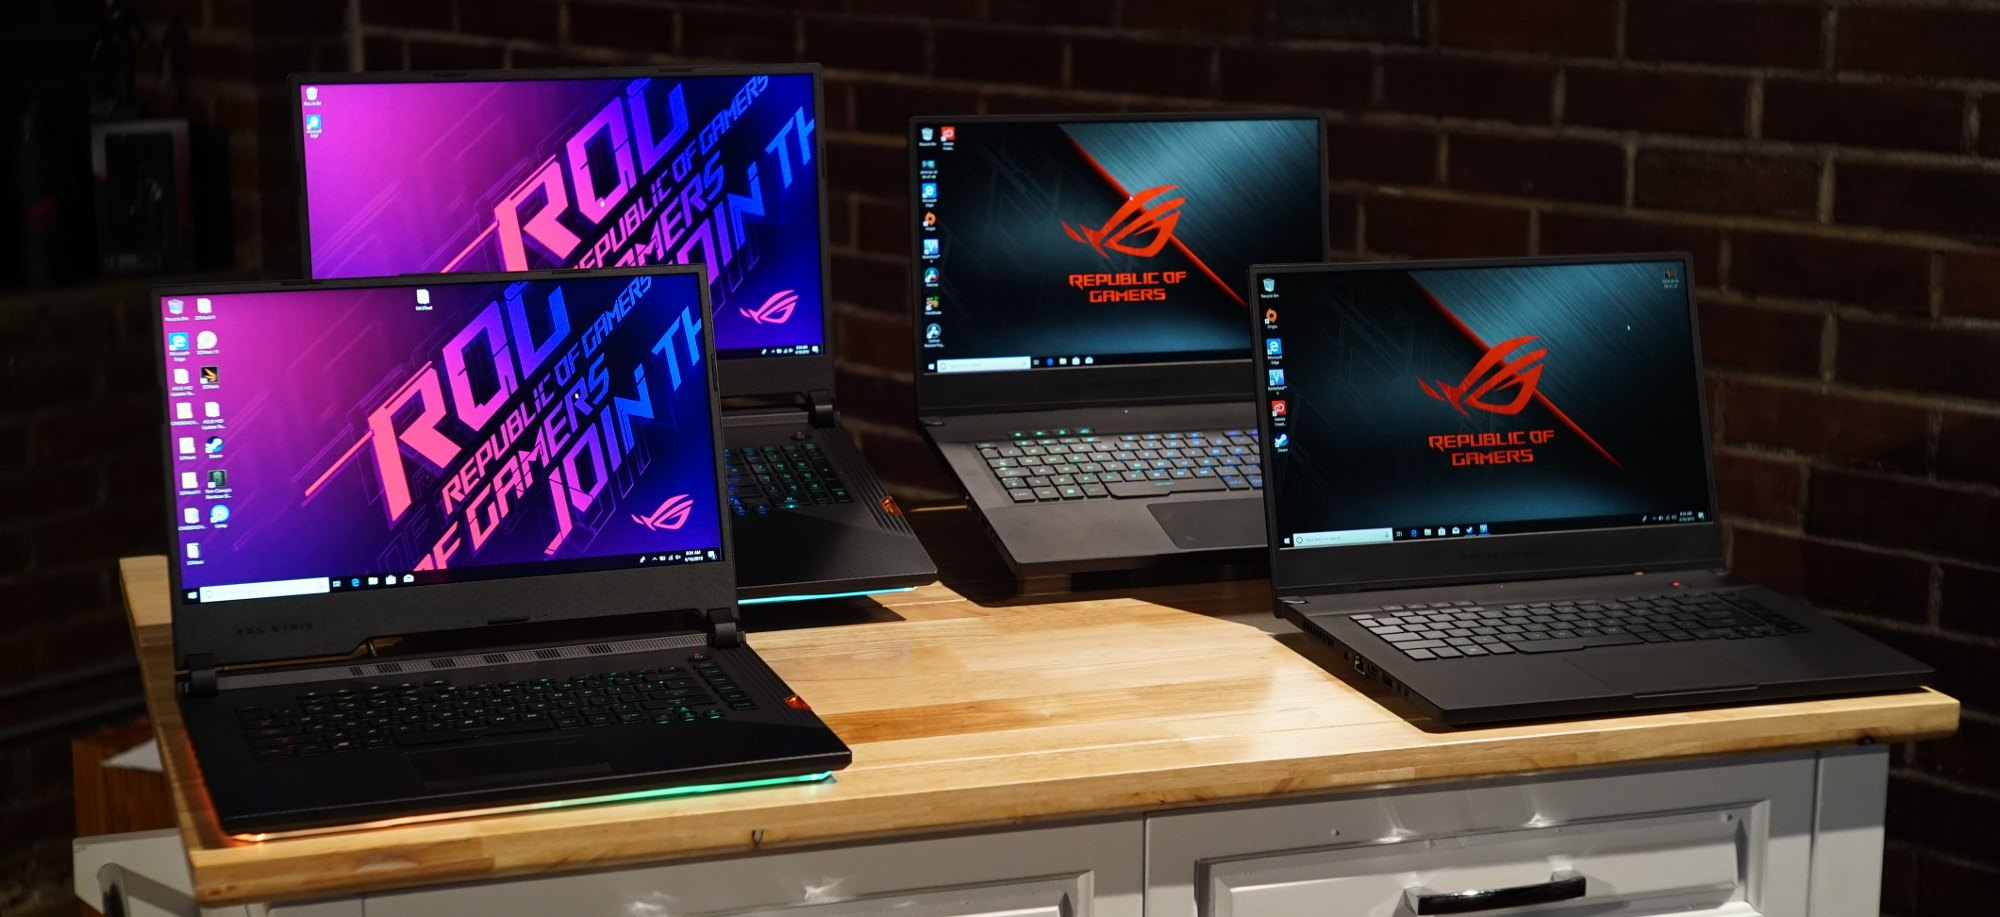 Best Gaming Laptops 2020.Top 10 Best Gaming Laptops 2020 Reviewed